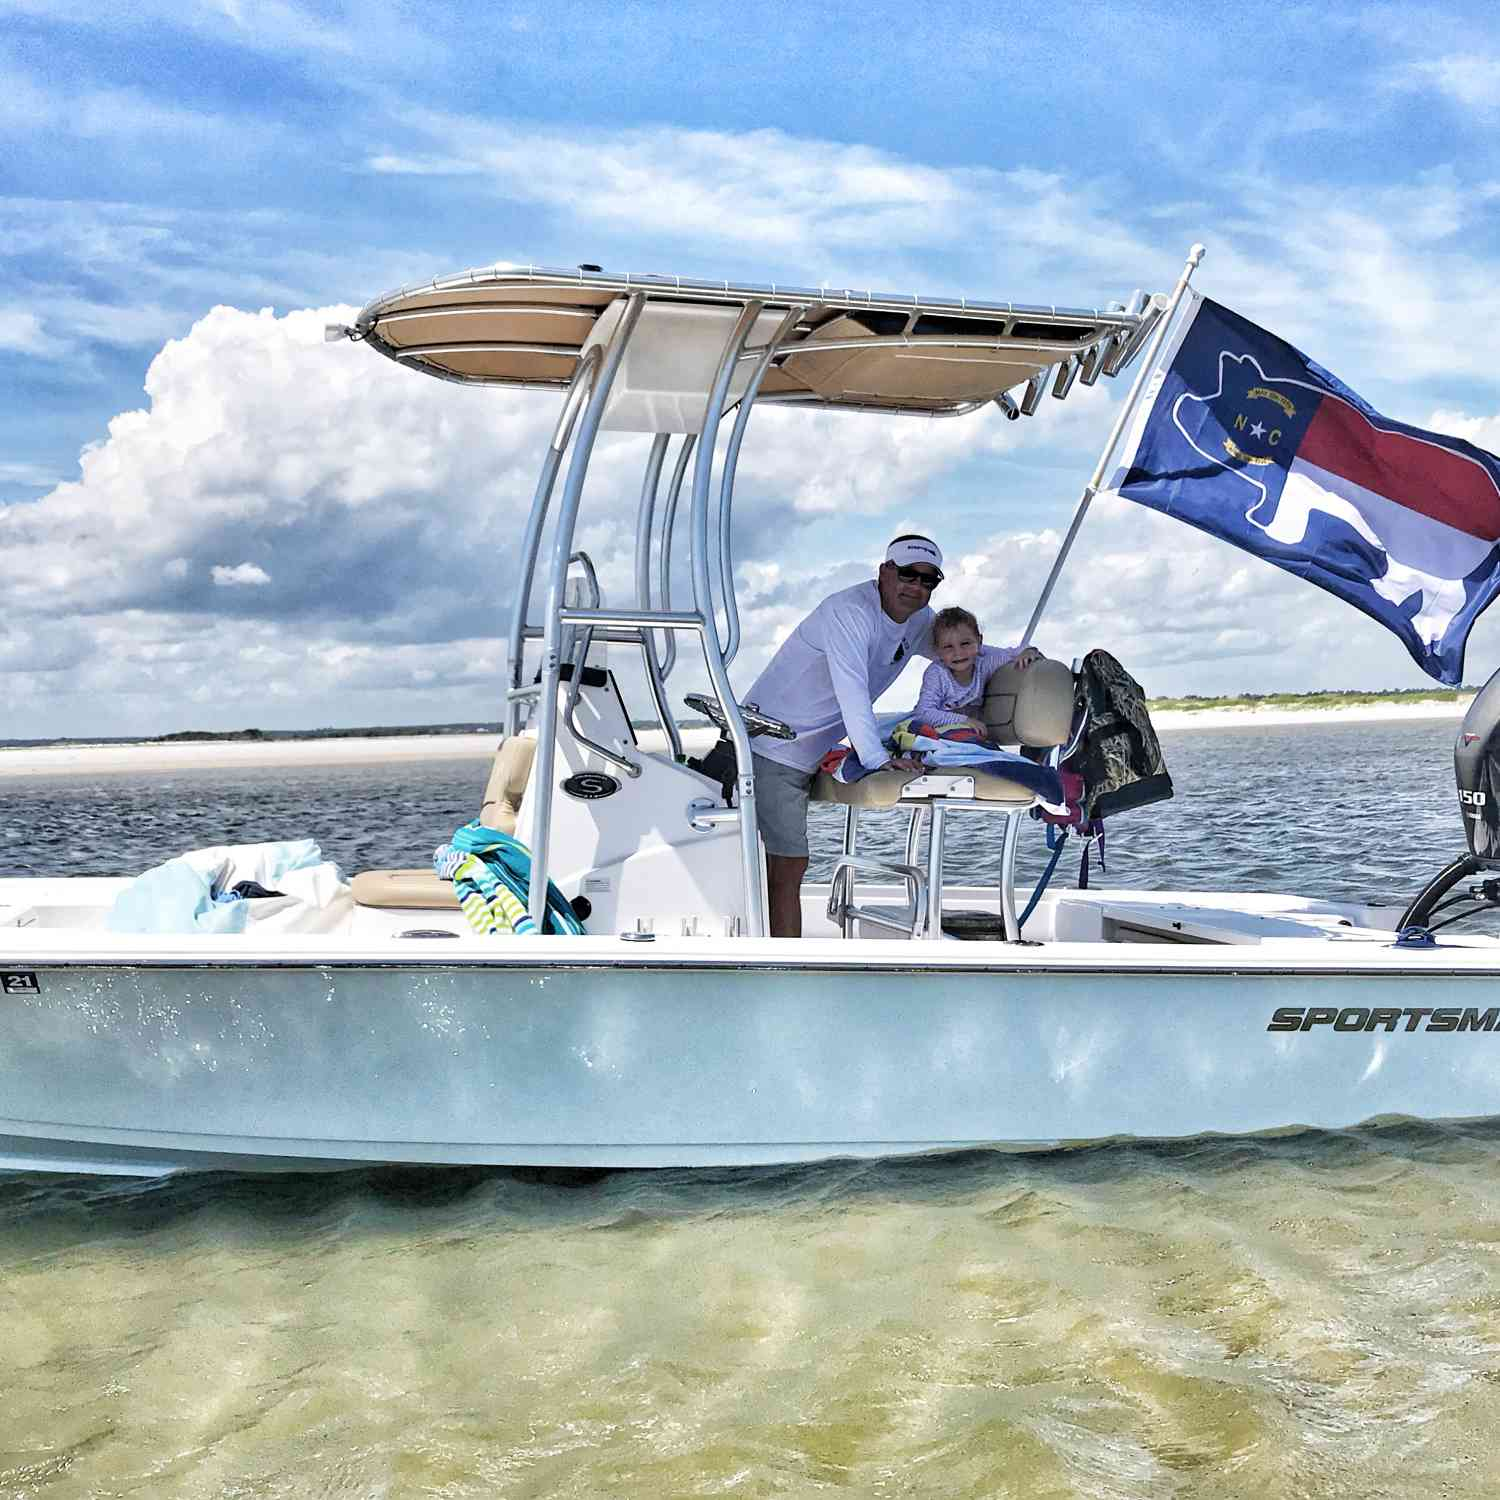 Title: NC Pig Flag Flying on Island Time - On board their Sportsman Tournament 214 Bay Boat - Location: Swansboro, NC. Participating in the Photo Contest #SportsmanJuly2020